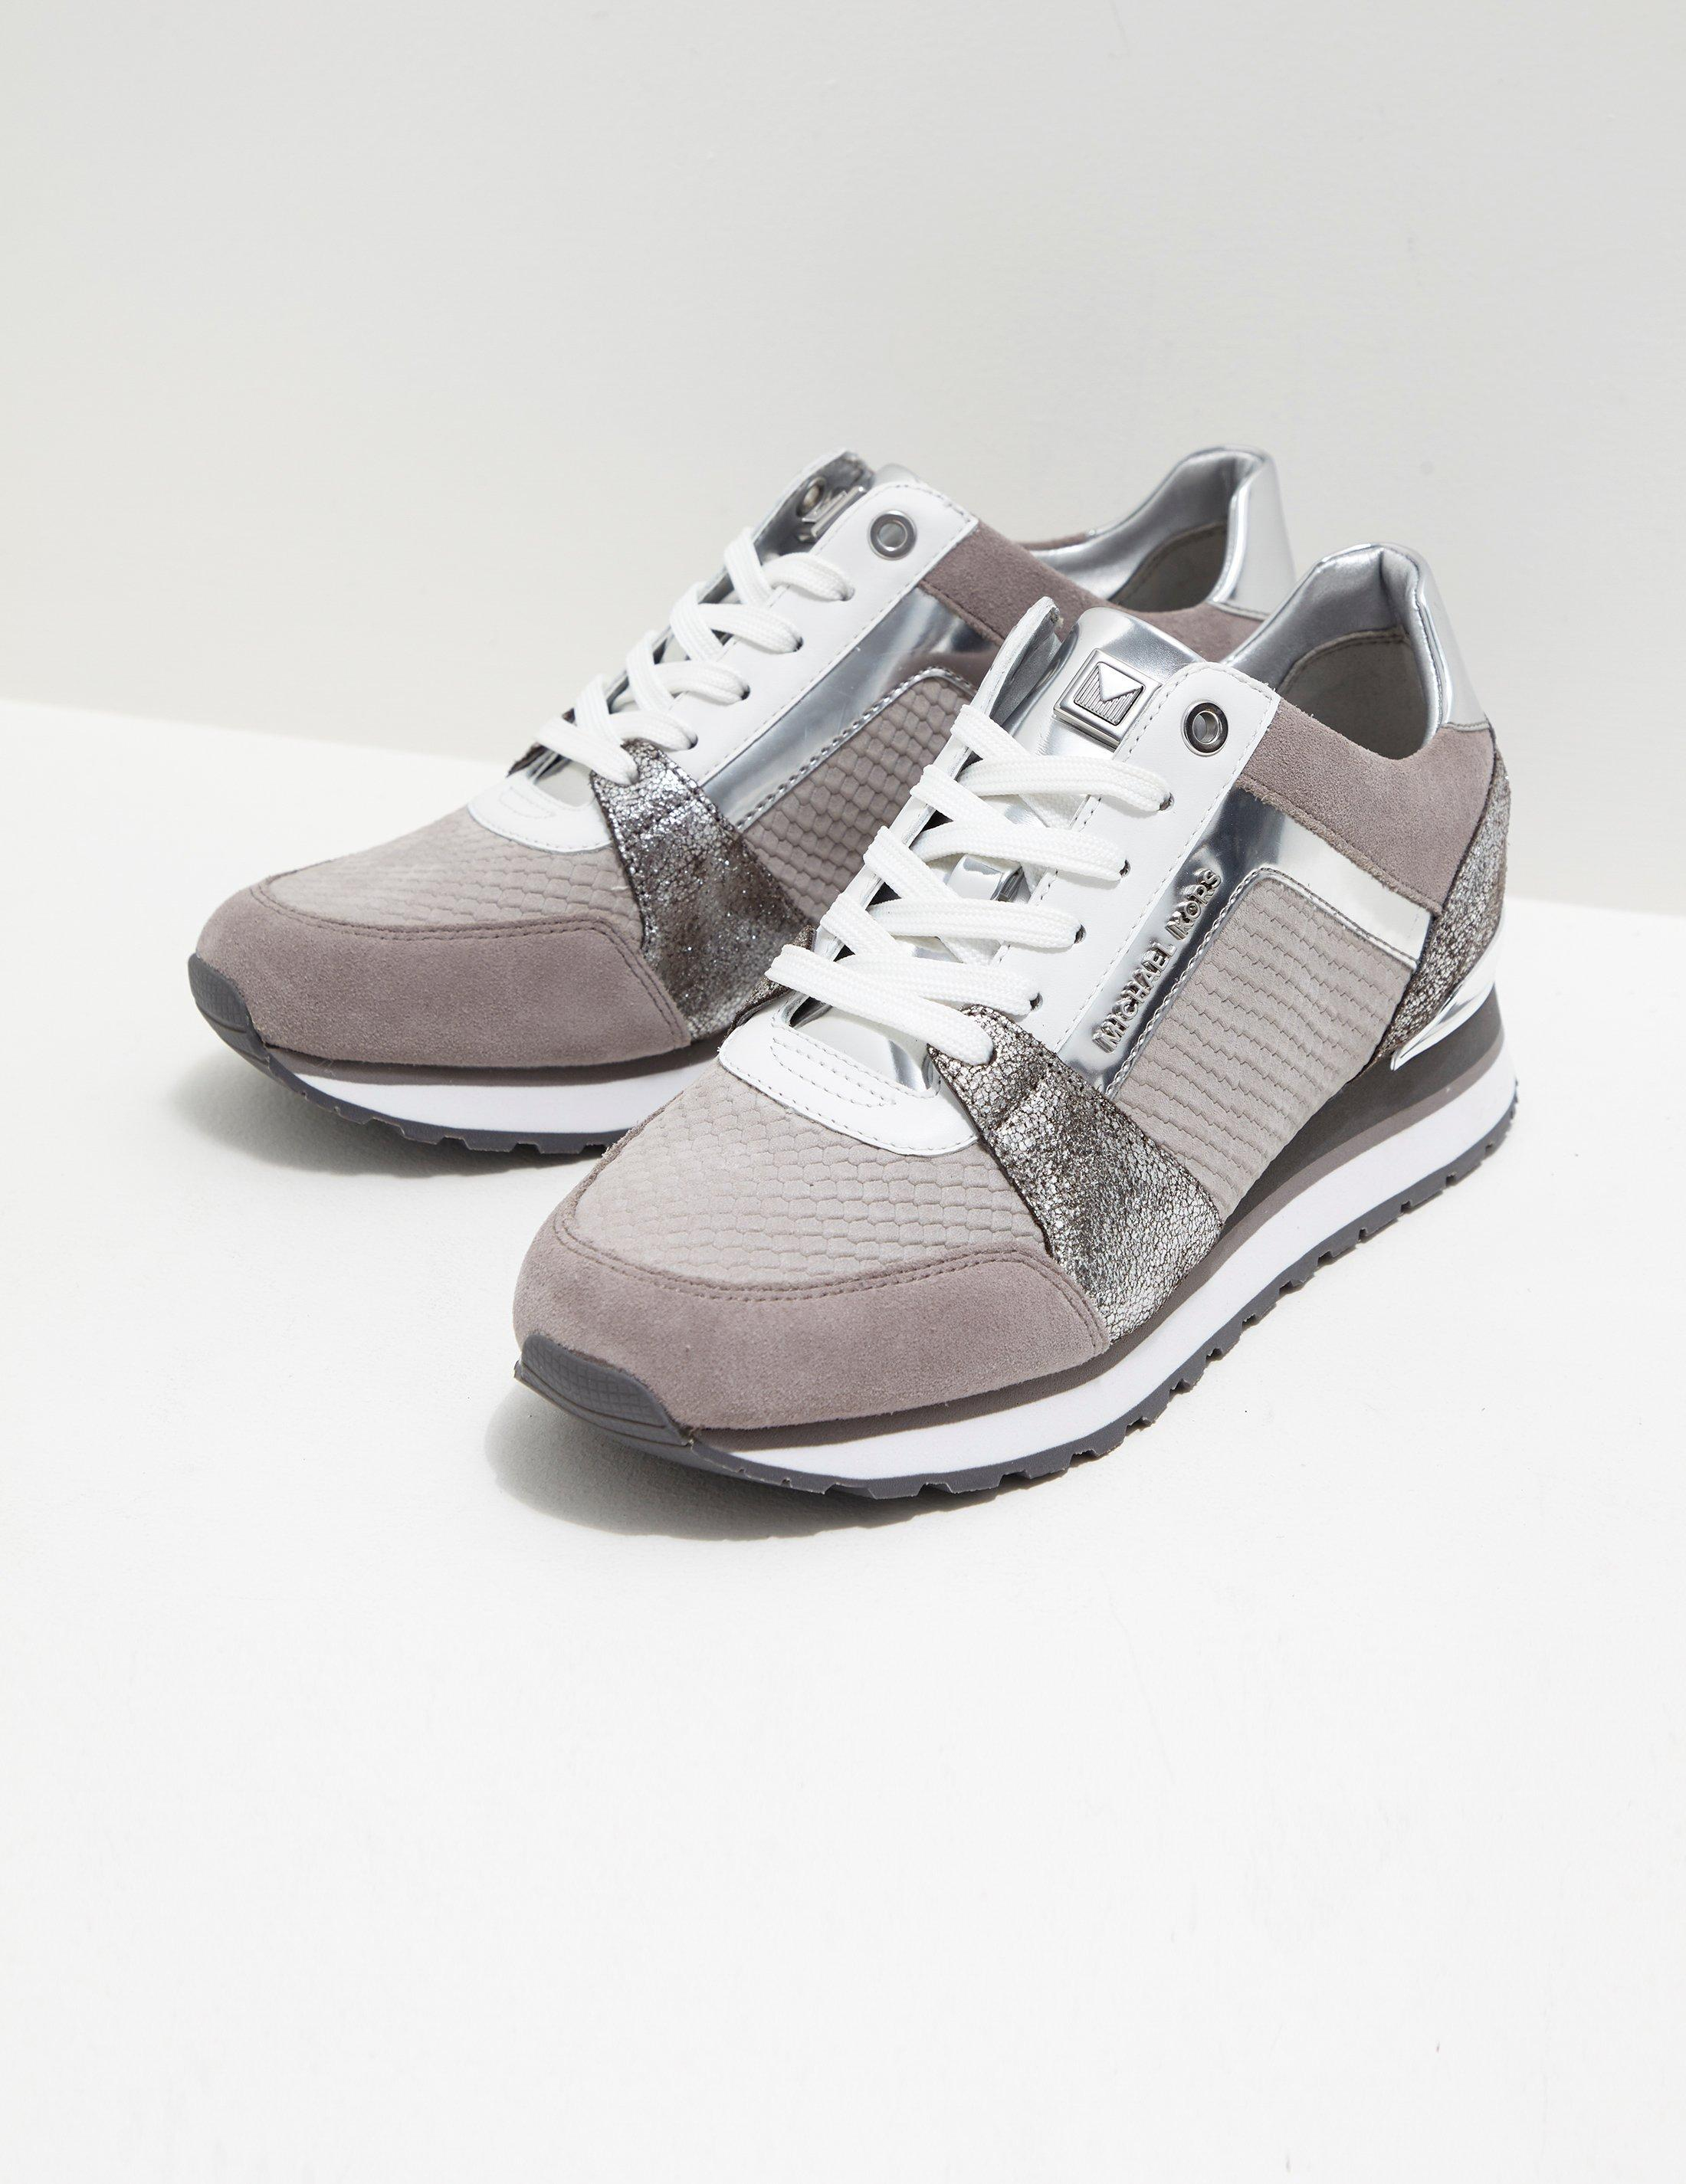 2ecf6e7531c Michael Kors Womens Billie Trainer Grey in Gray - Lyst